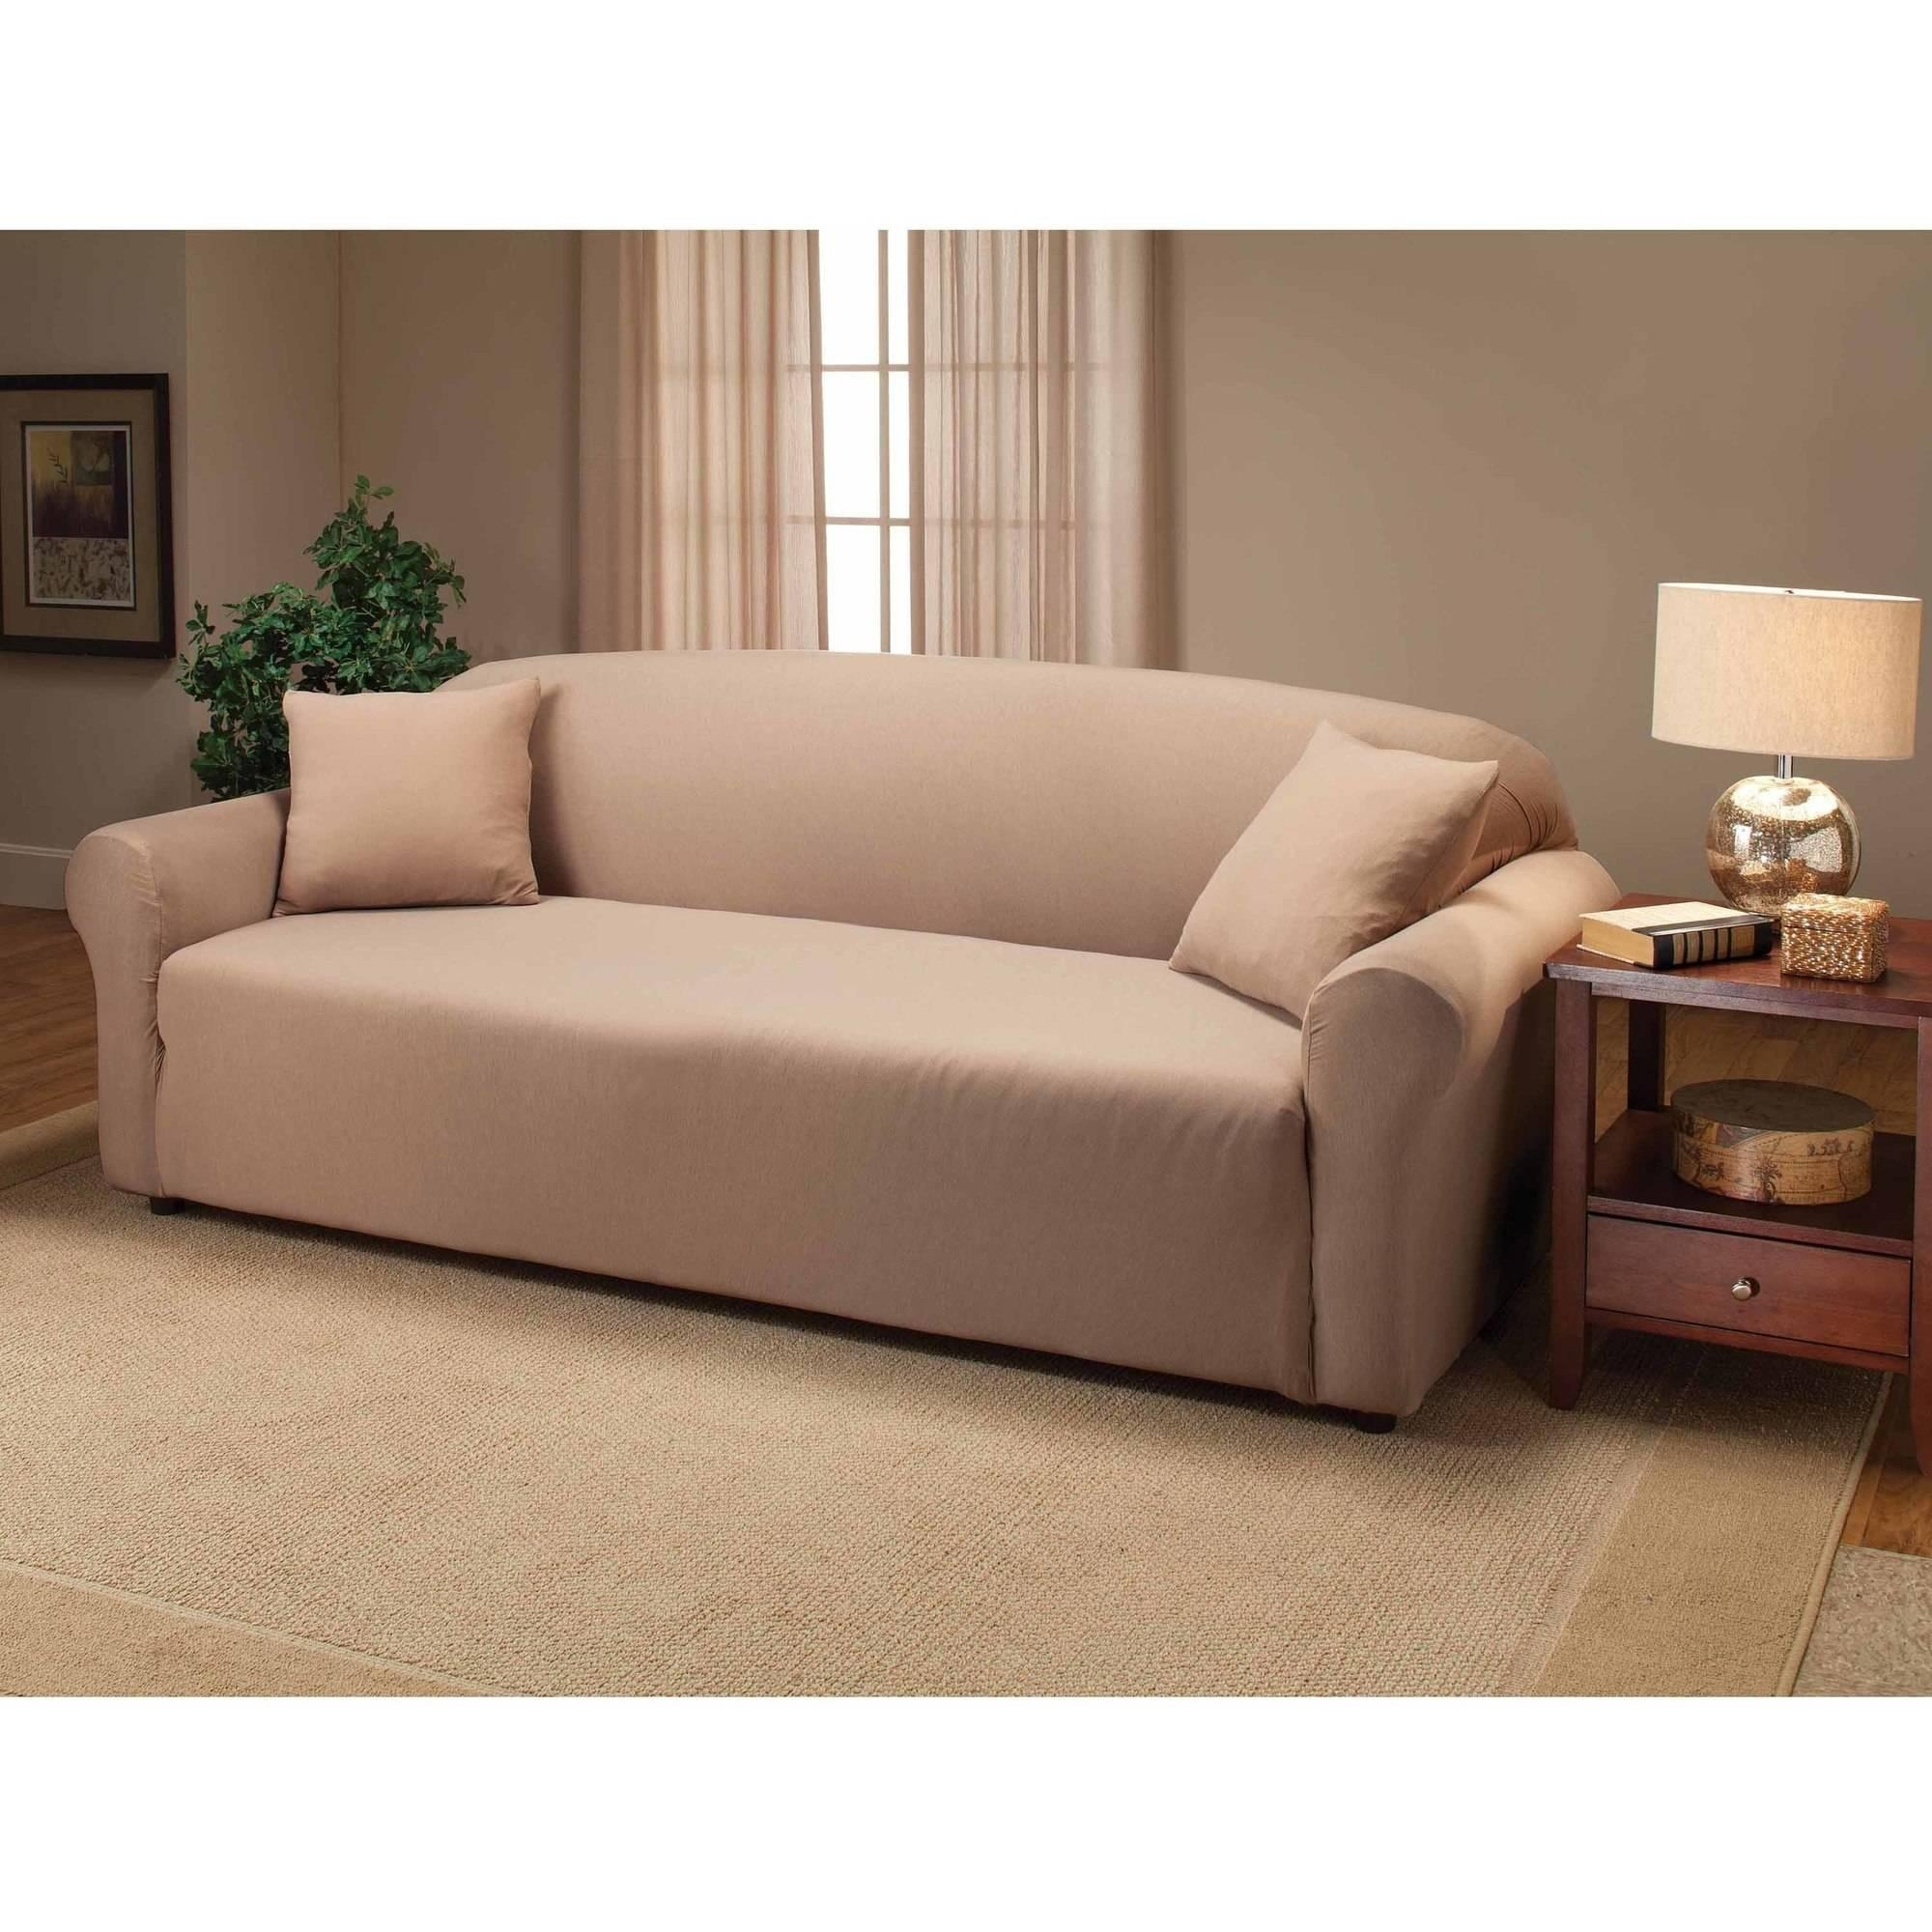 Furniture: Couch Covers At Walmart To Make Your Furniture Stylish With Regard To Slipcover For Reclining Sofas (View 20 of 20)